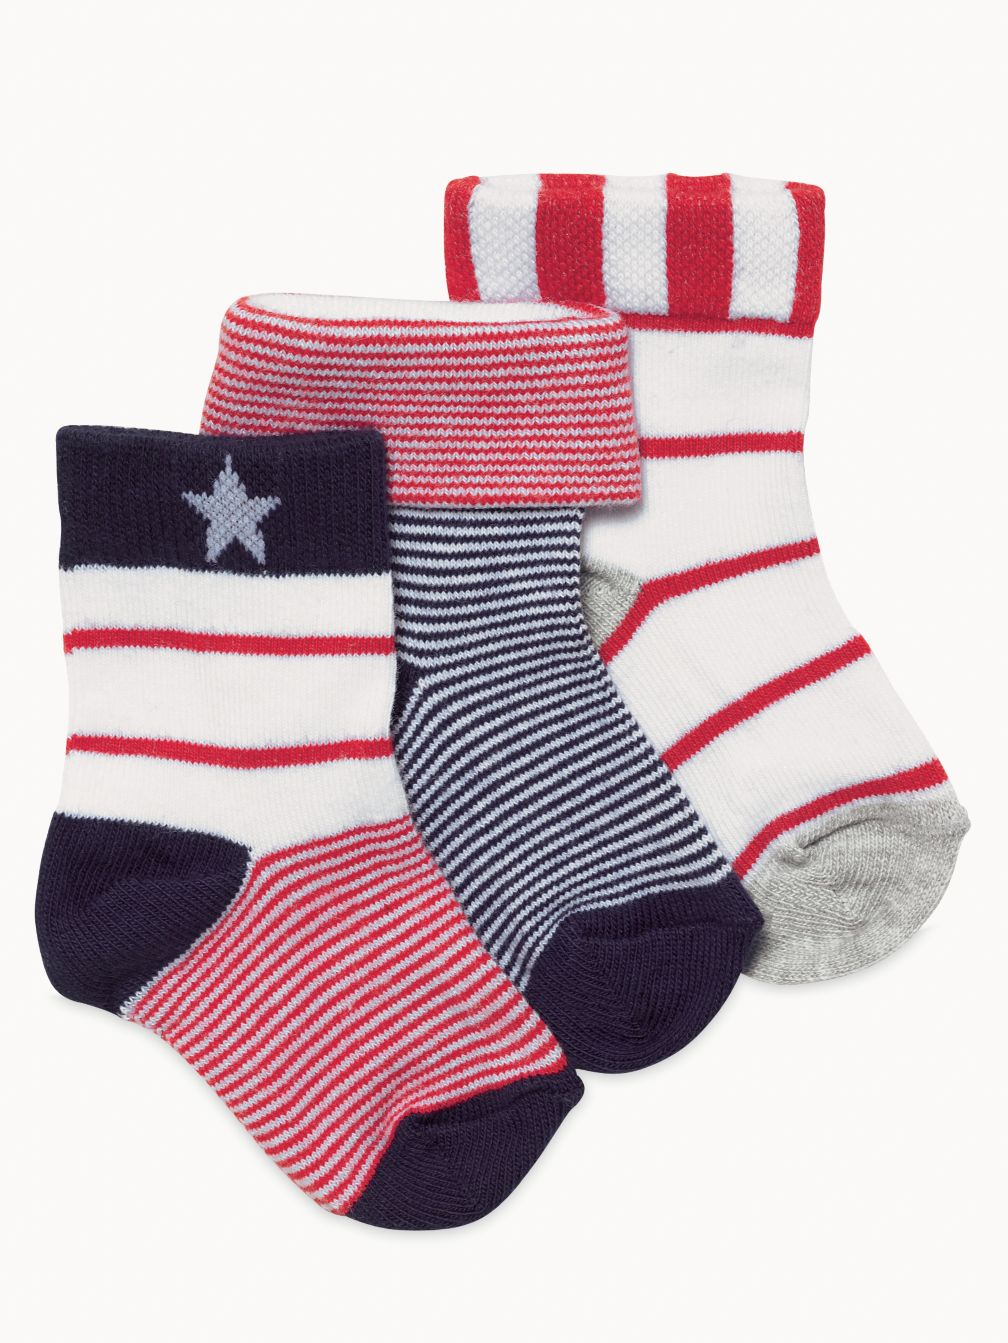 3 pack newborn red and white socks